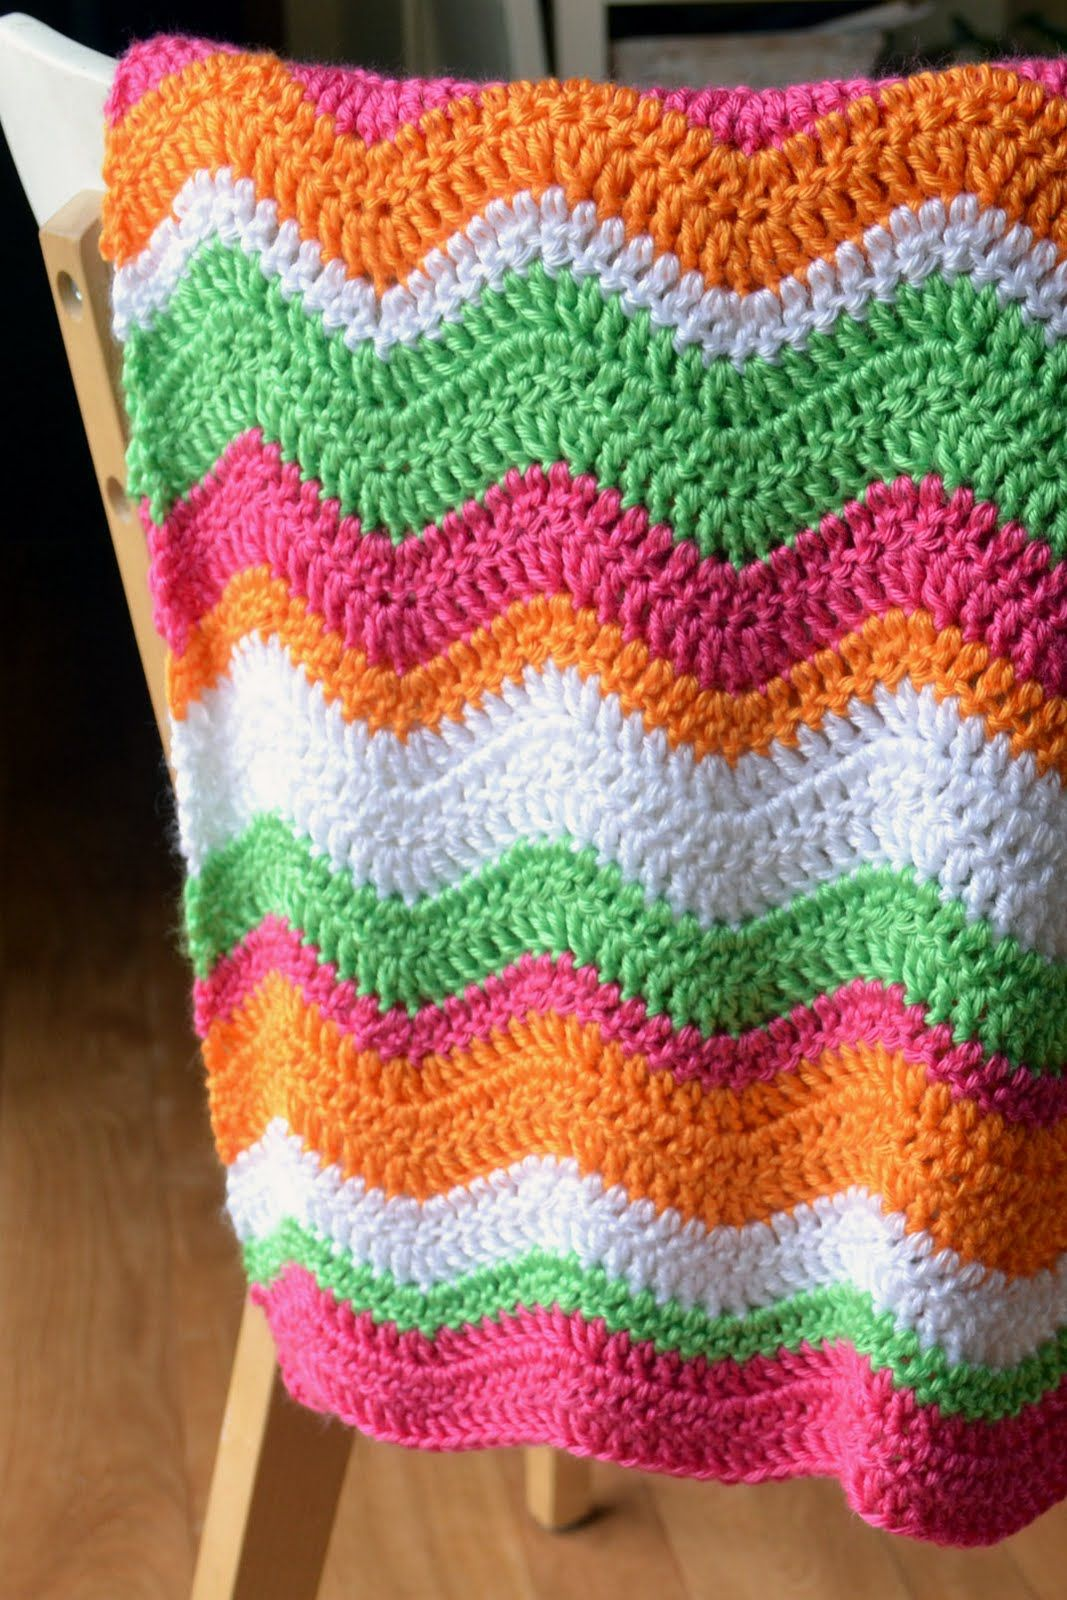 Crochet in Color: Instructions for the Brite Baby Ripple | mantas ...